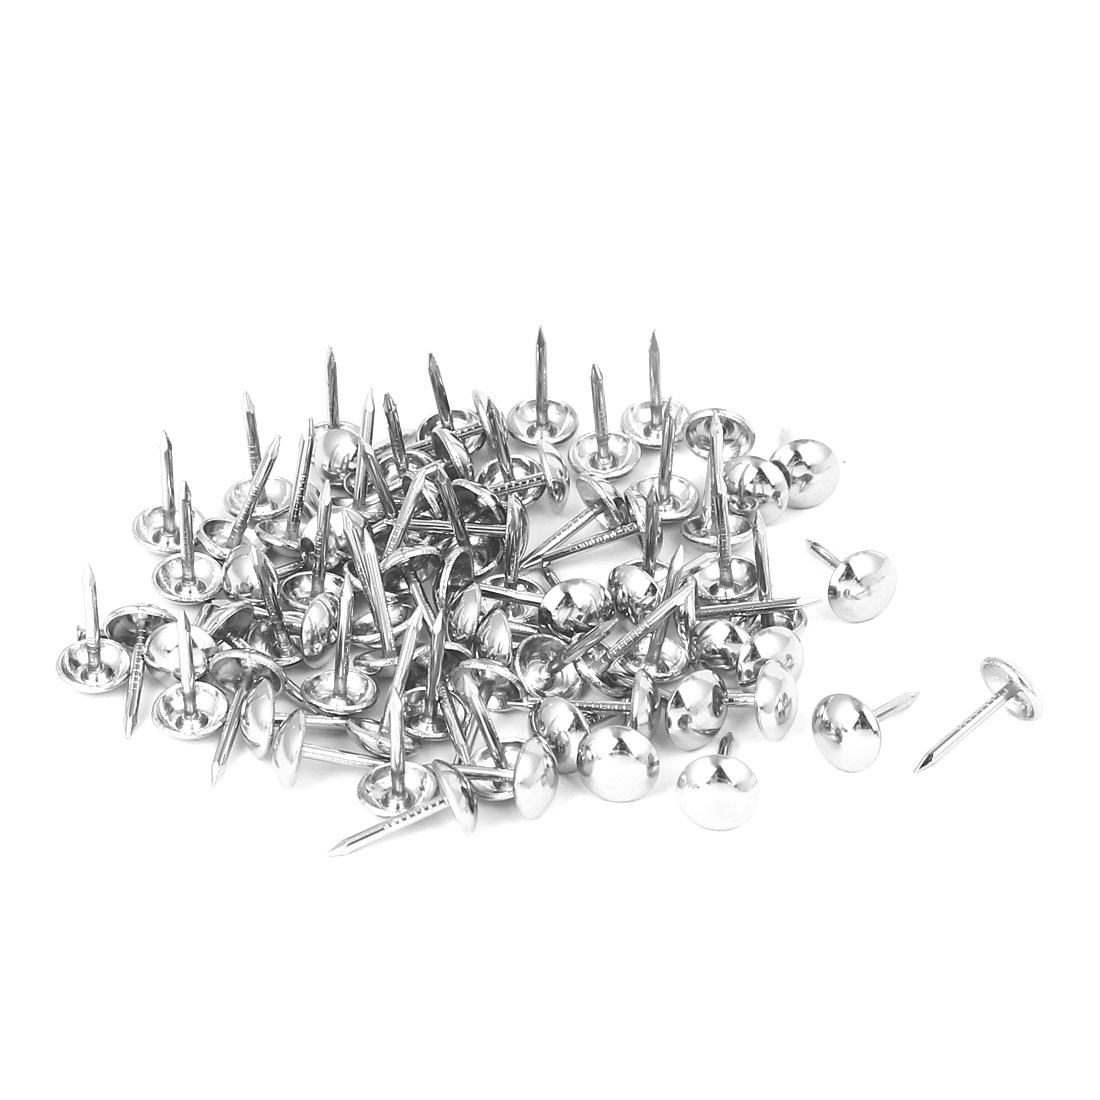 8mm Head Dia 15mm Height Upholstery Nail Thumb Tack Push Pin Silver Tone 100pcs